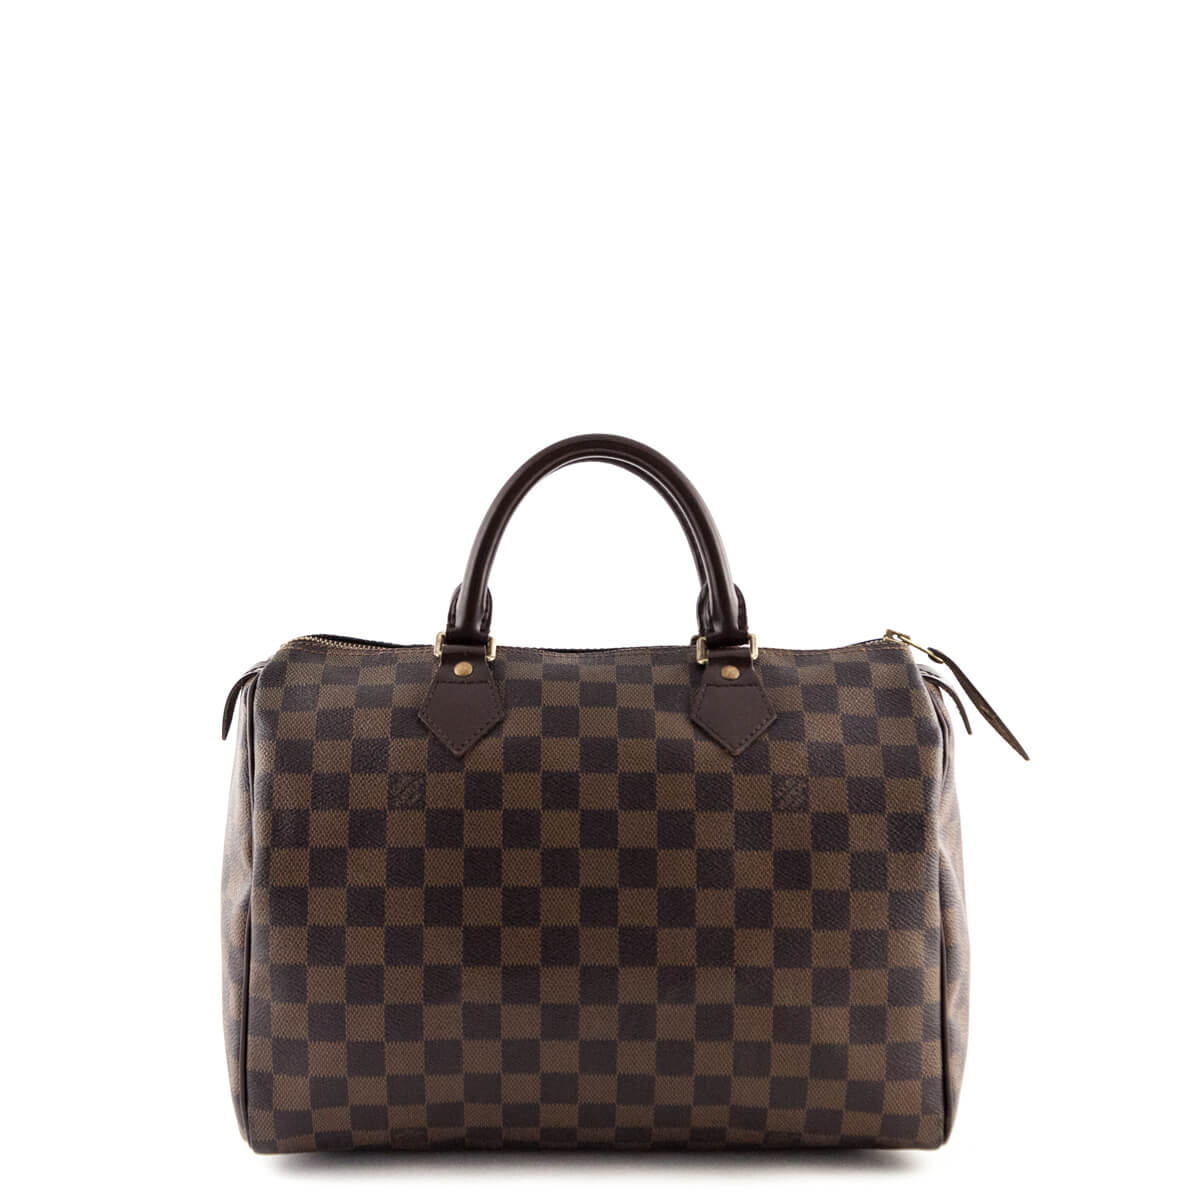 8a049c959128 Louis Vuitton Damier Ebene Speedy 30 - LOVE that BAG - Preowned Authentic  Designer Handbags ...